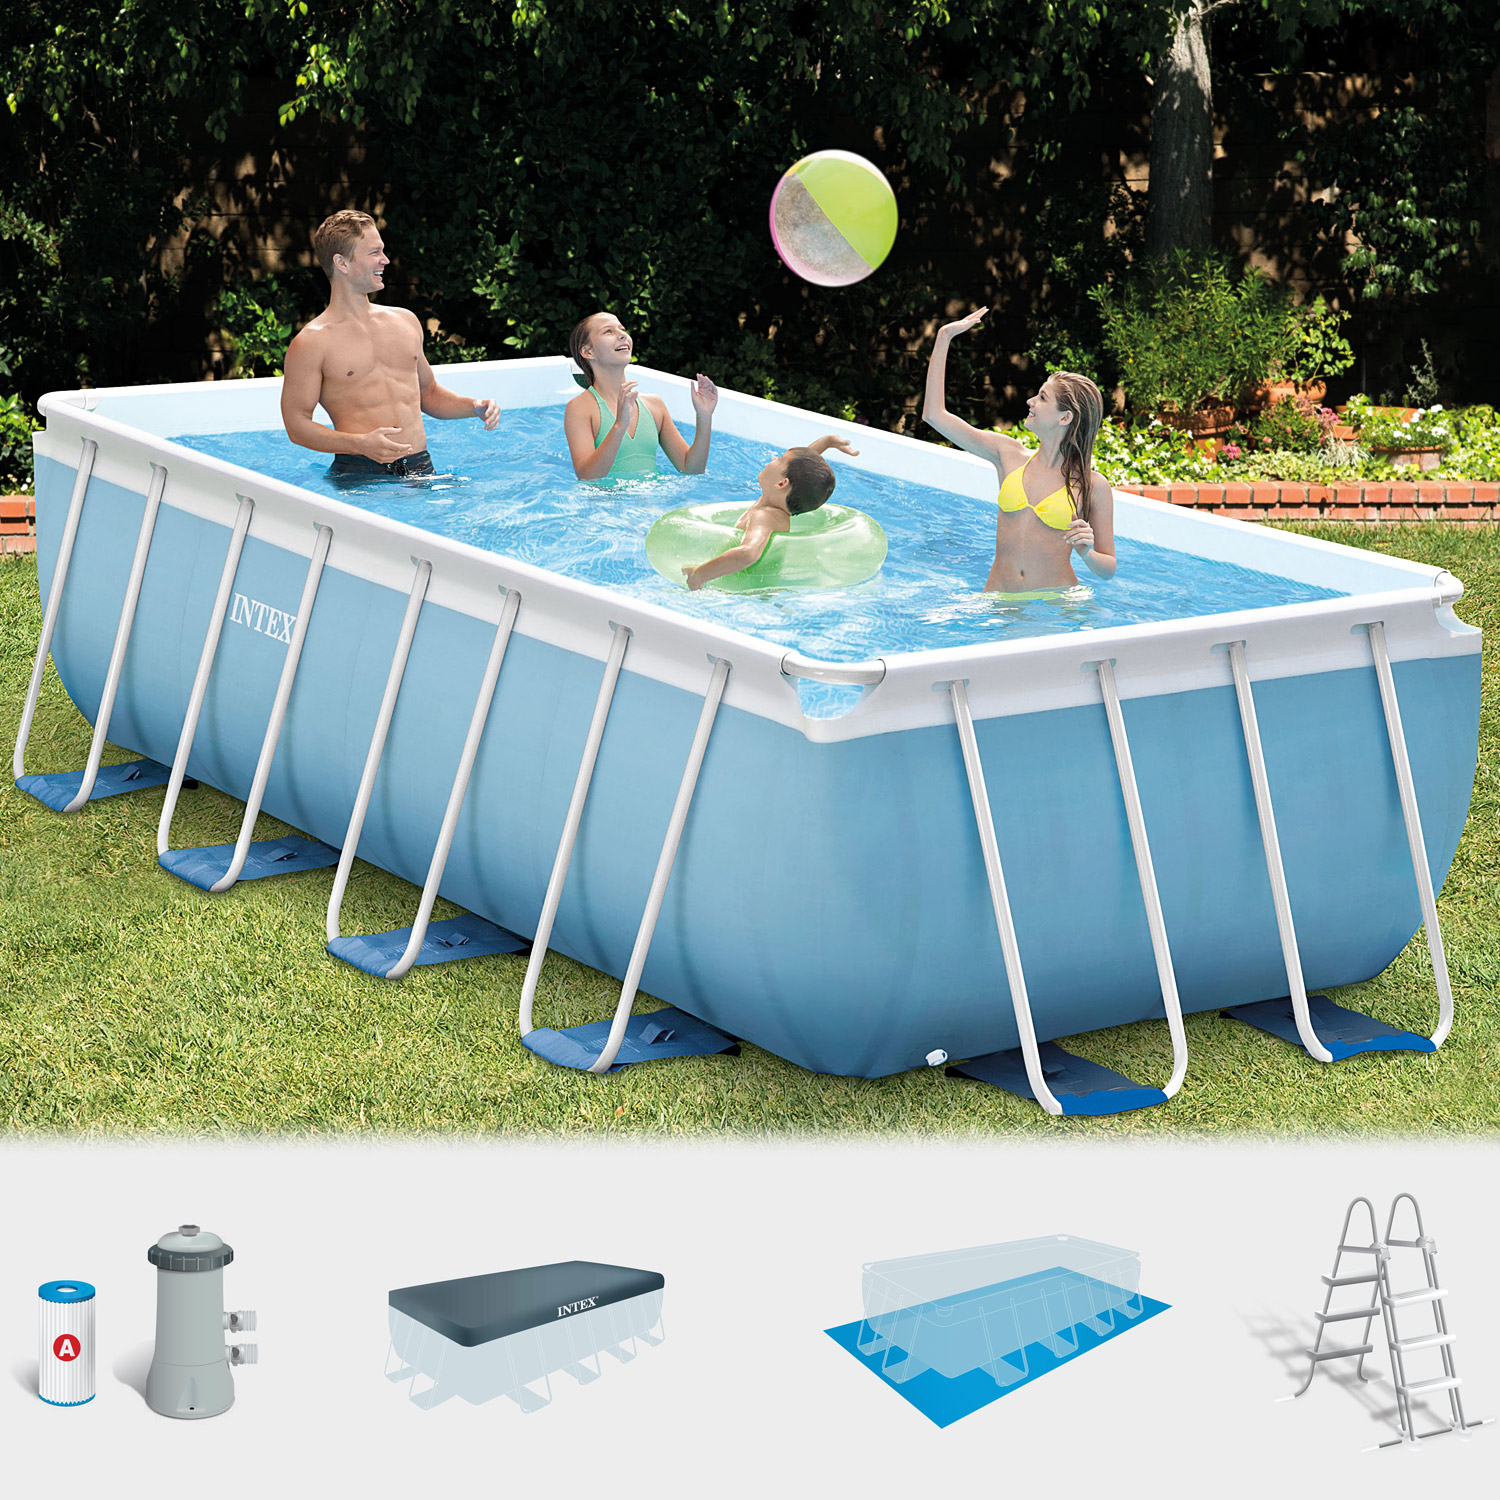 Intex frame pool set prism 488x244x107 cm pumpe schwimmbad for Garten pool intex